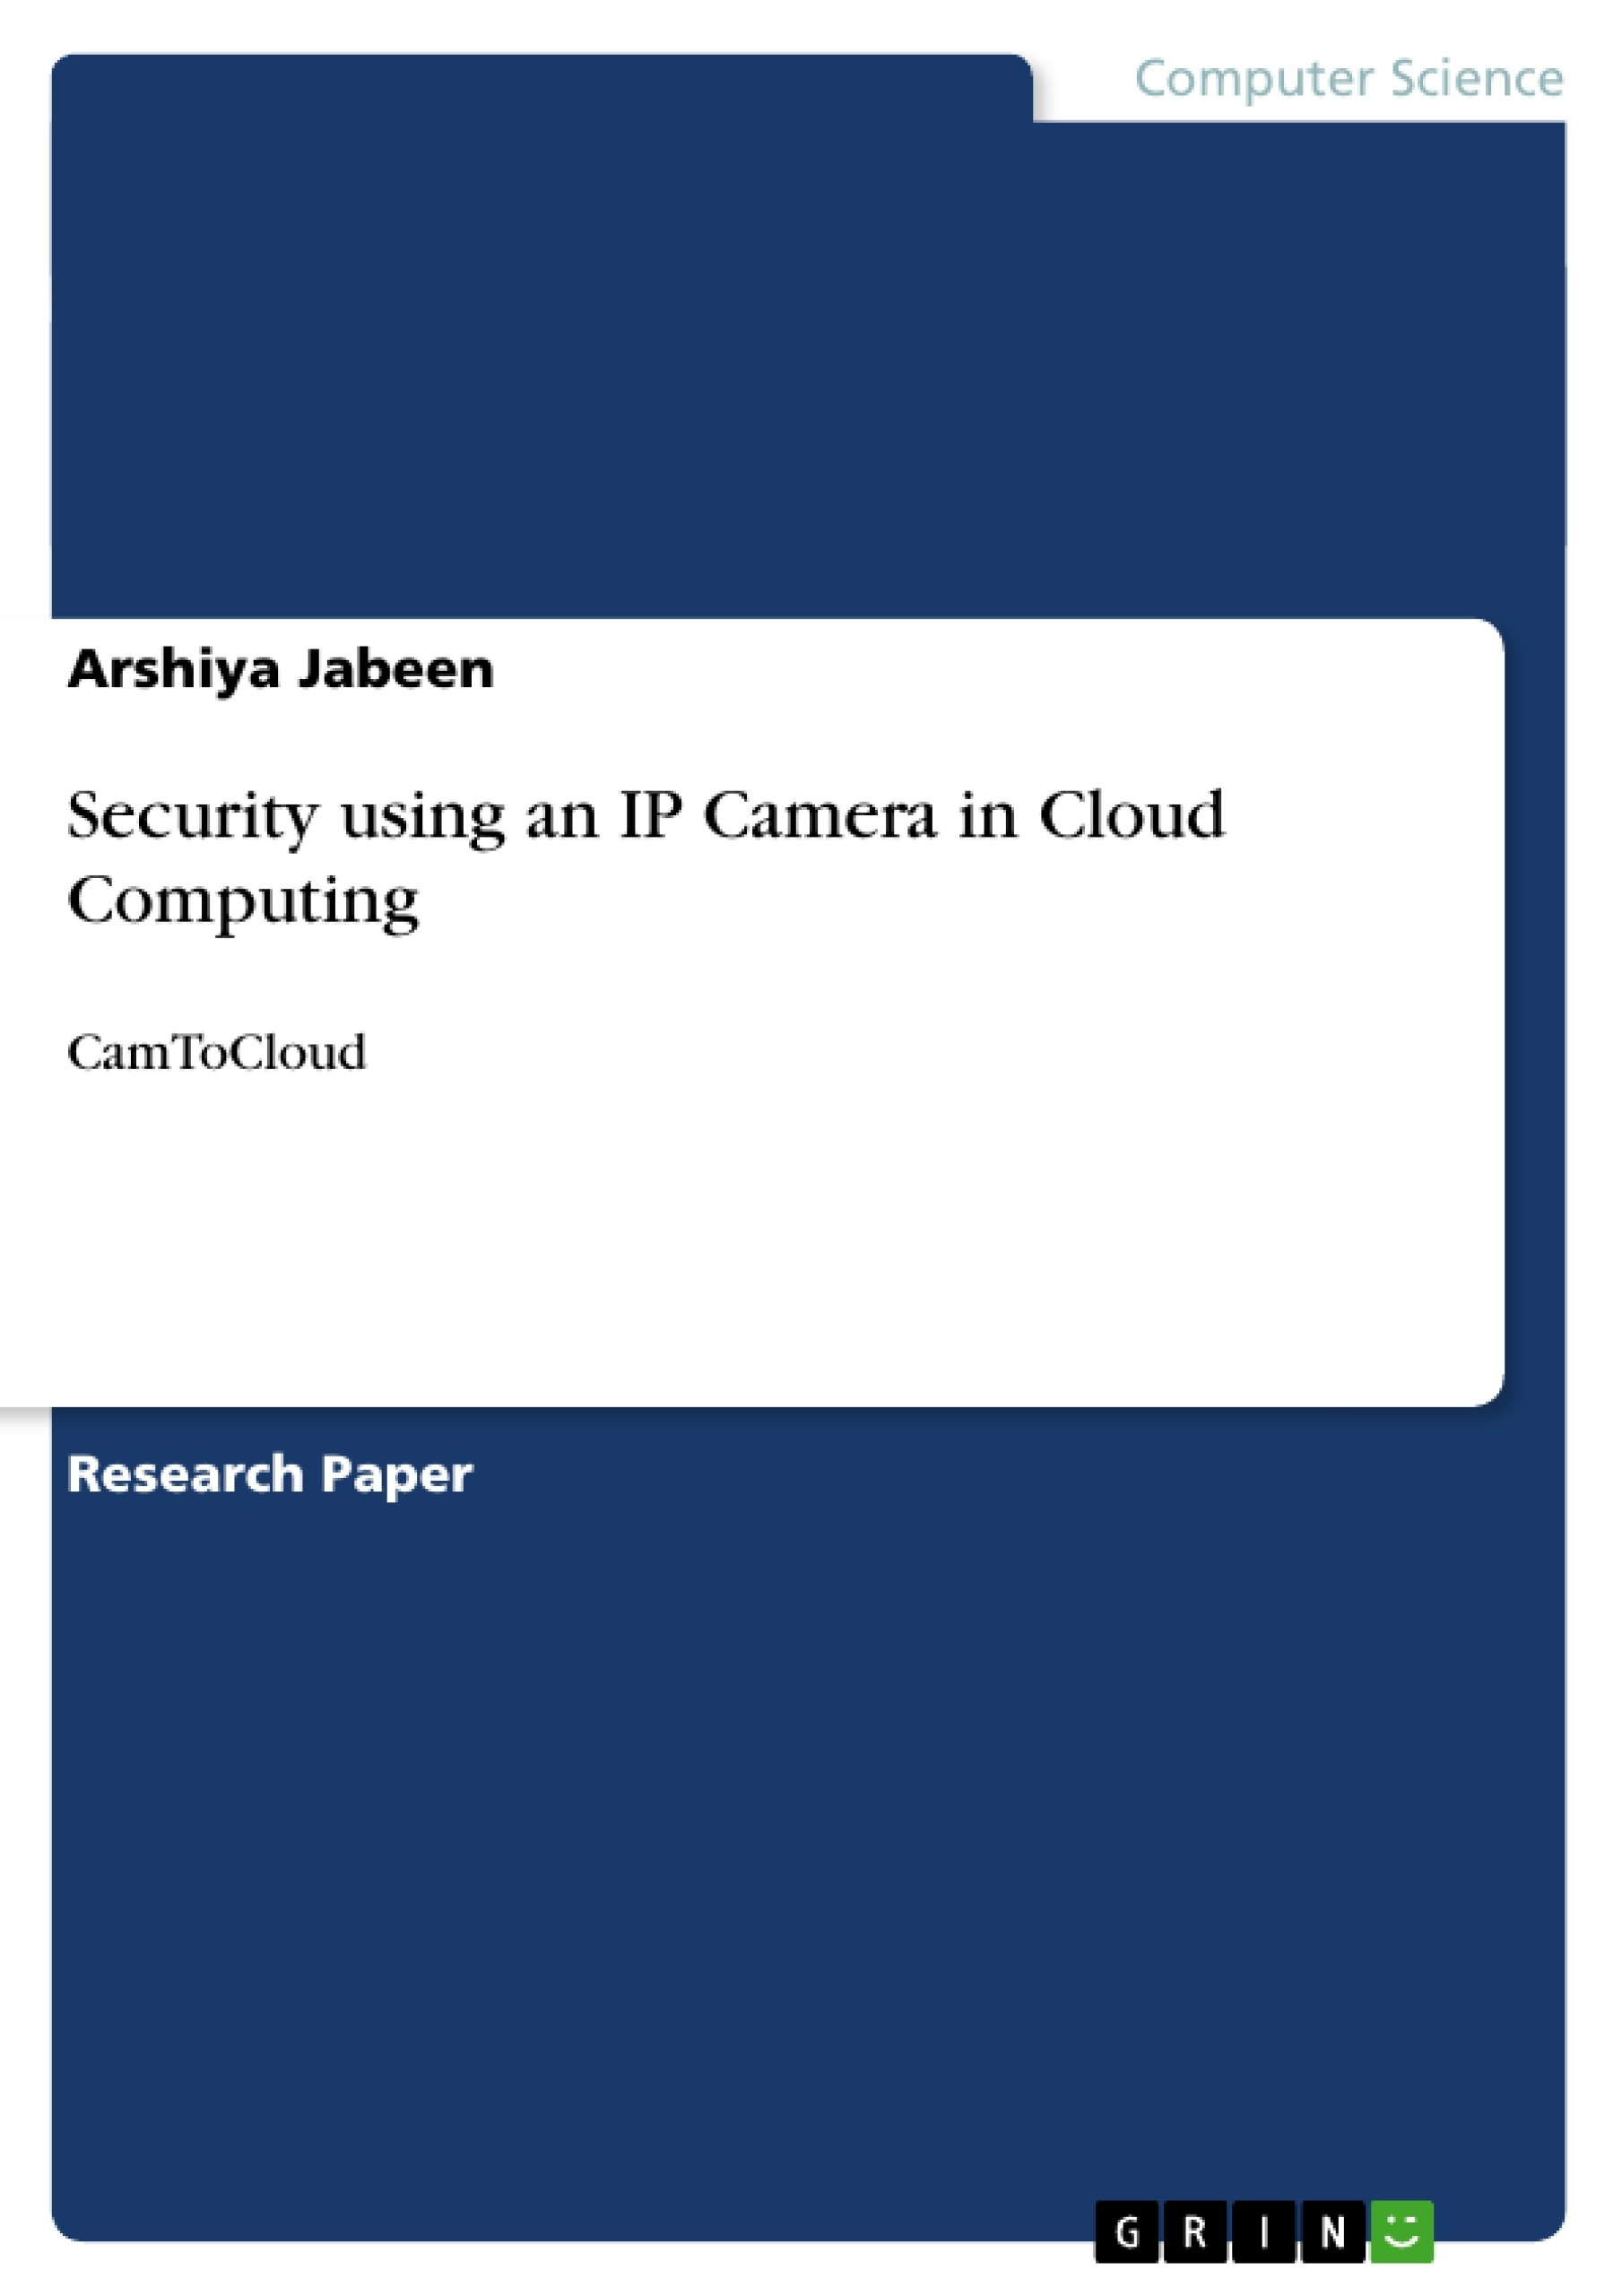 security using an ip camera in cloud computing publish your security using an ip camera in cloud computing publish your master s thesis bachelor s thesis essay or term paper